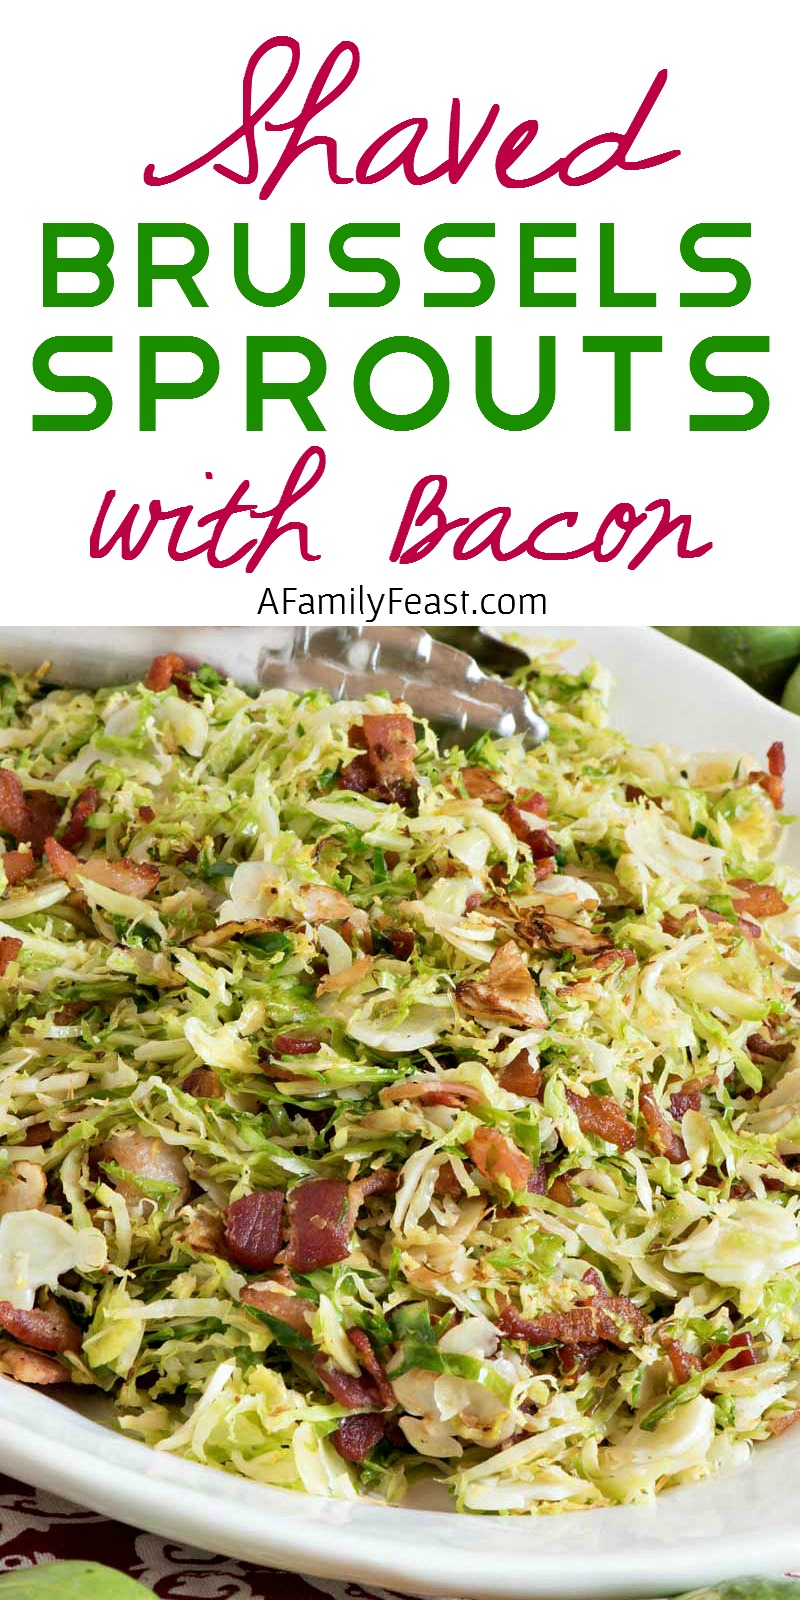 Shaved Brussels Sprouts with Bacon - A simple and delicious side dish that cooks up in just minutes!